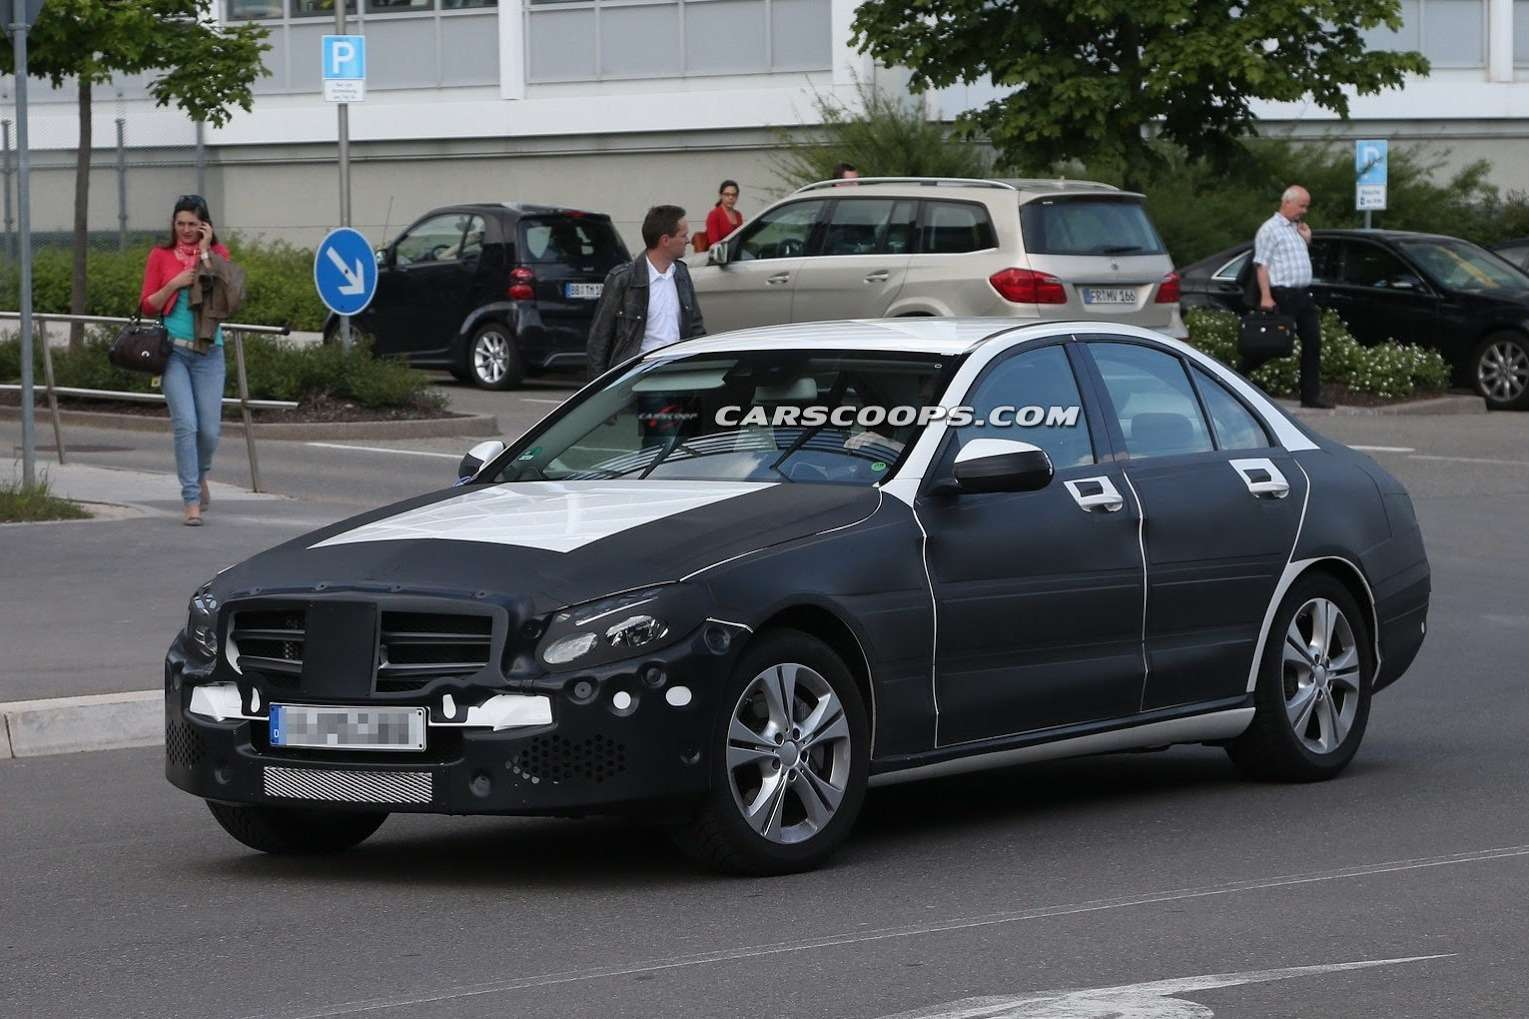 2015 Mercedes C Class Undisguised Carscoops5[3] no copyright